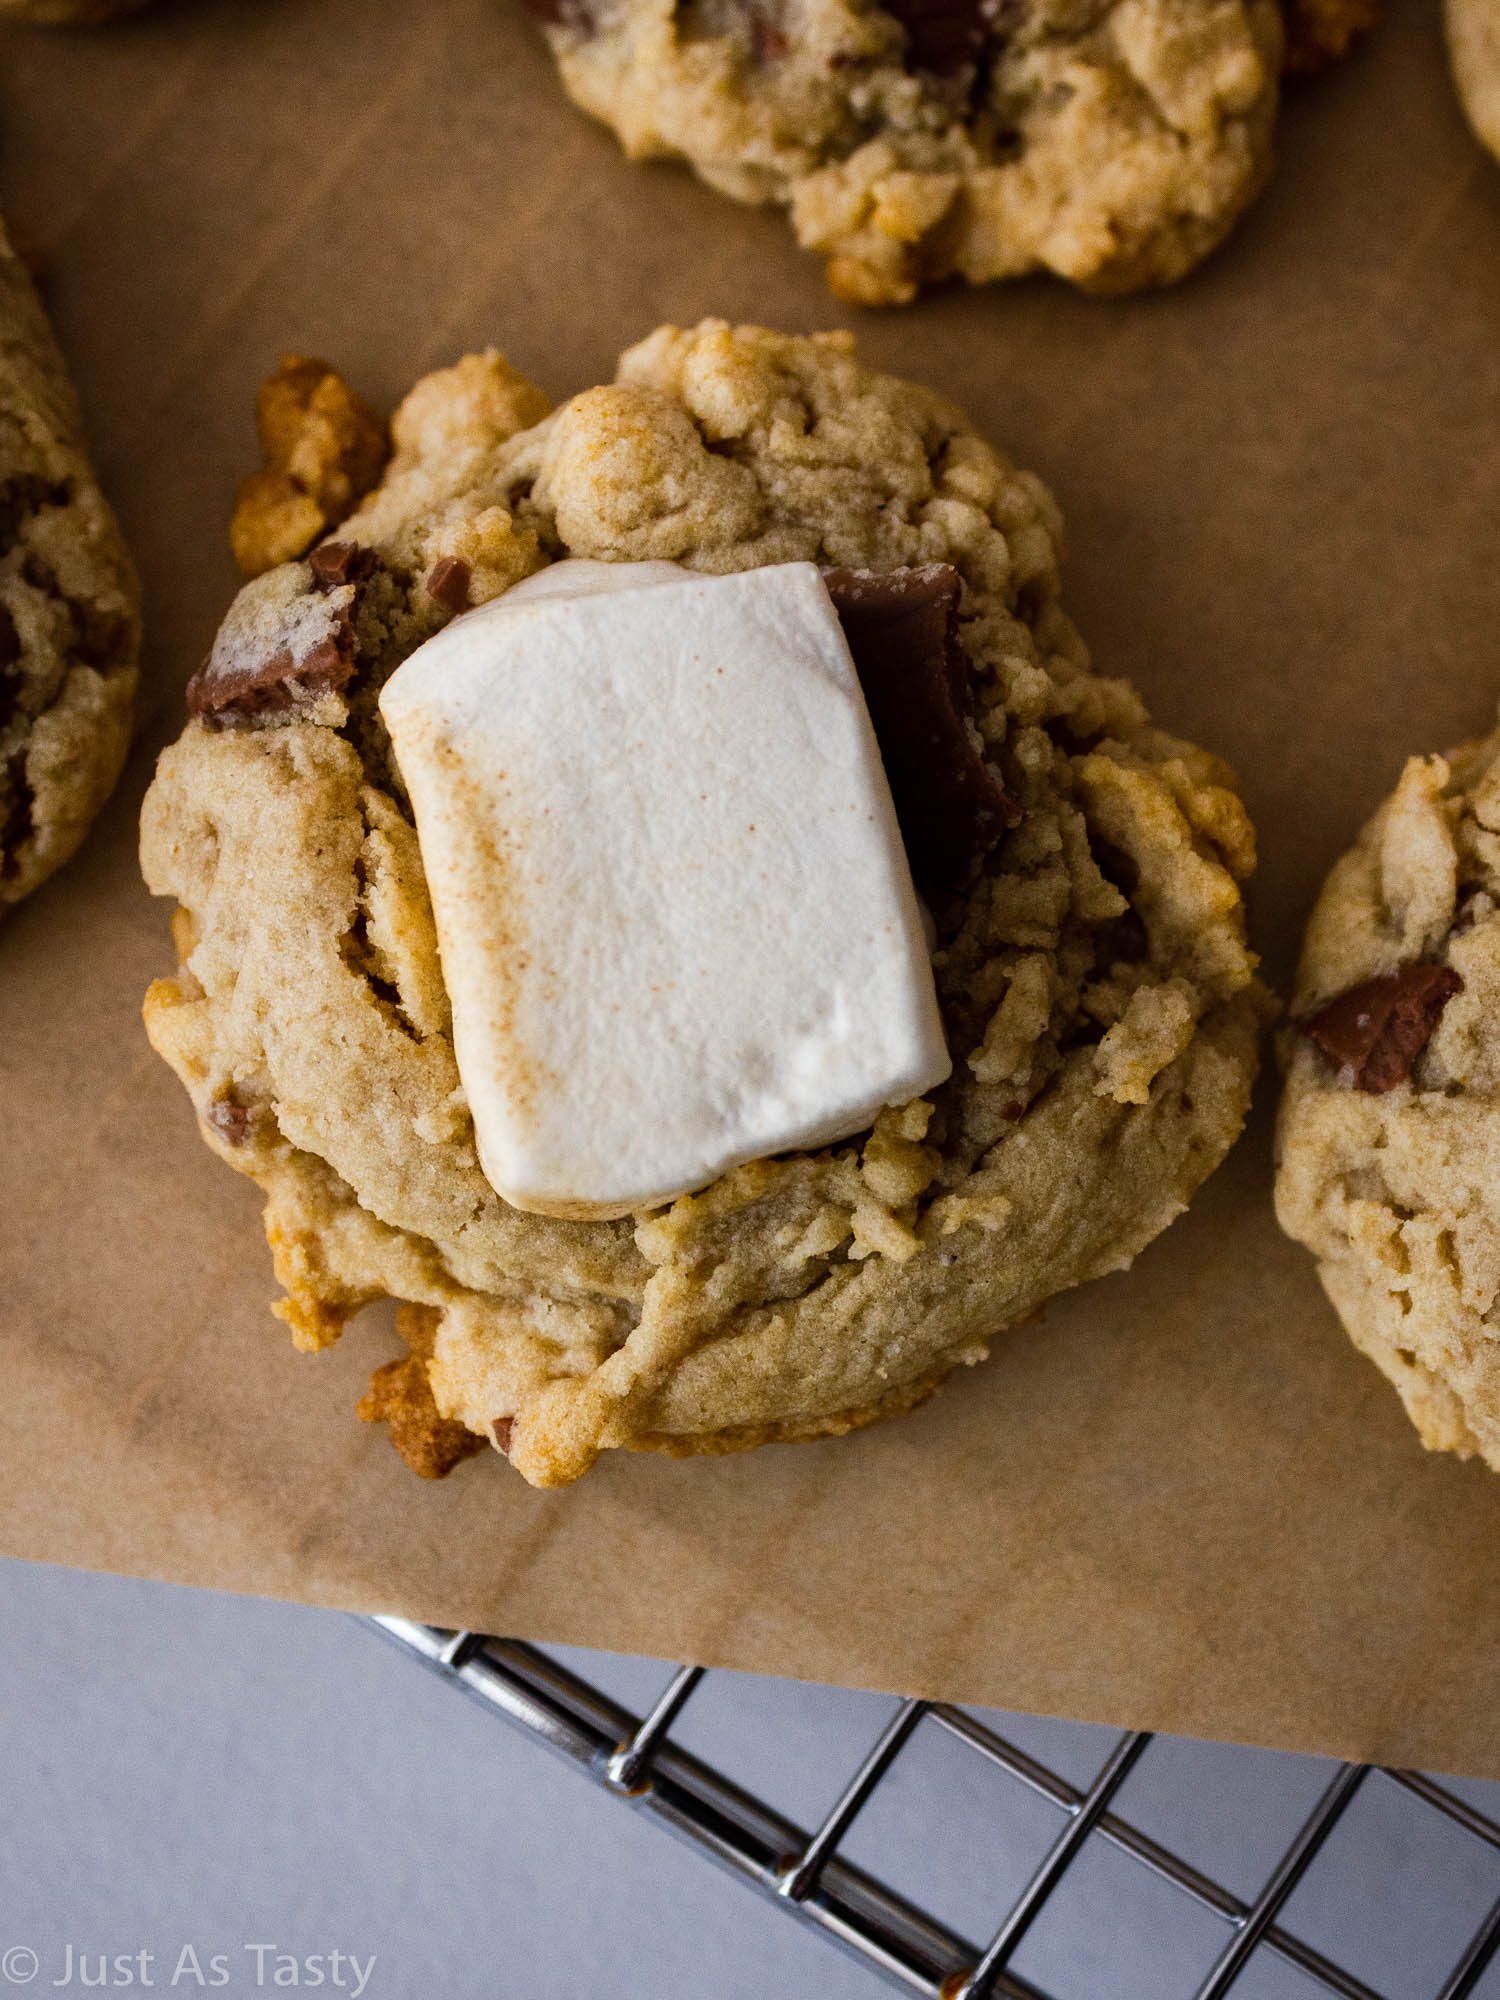 Close-up of a s'mores cookie topped with a marshmallow.